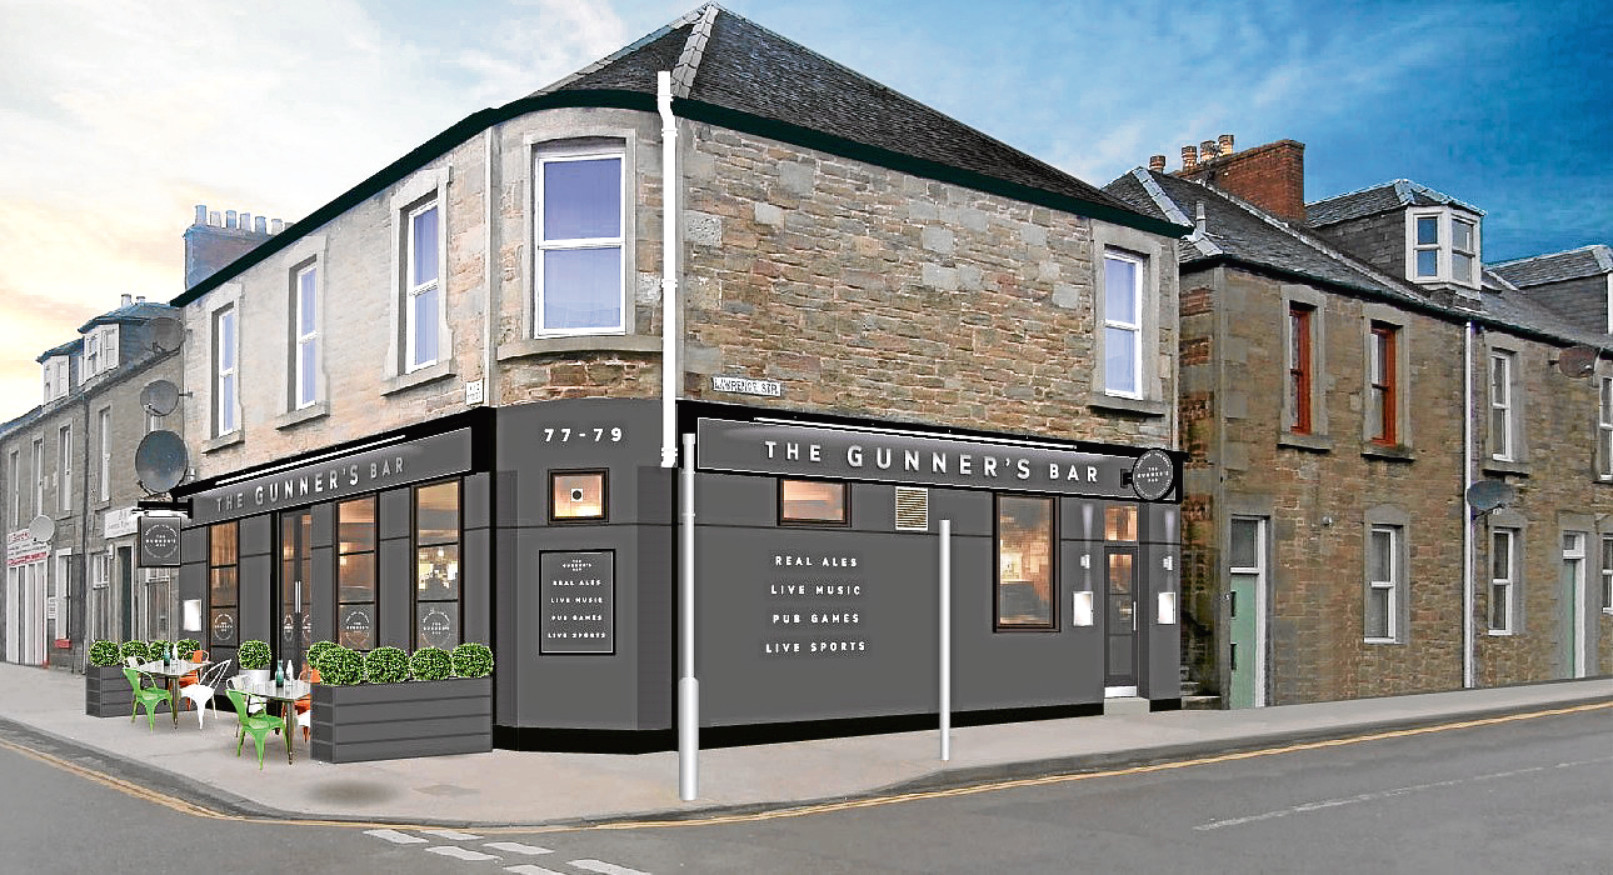 An artist's impression of how the revamped Gunner's Bar in Broughty Ferry will look.